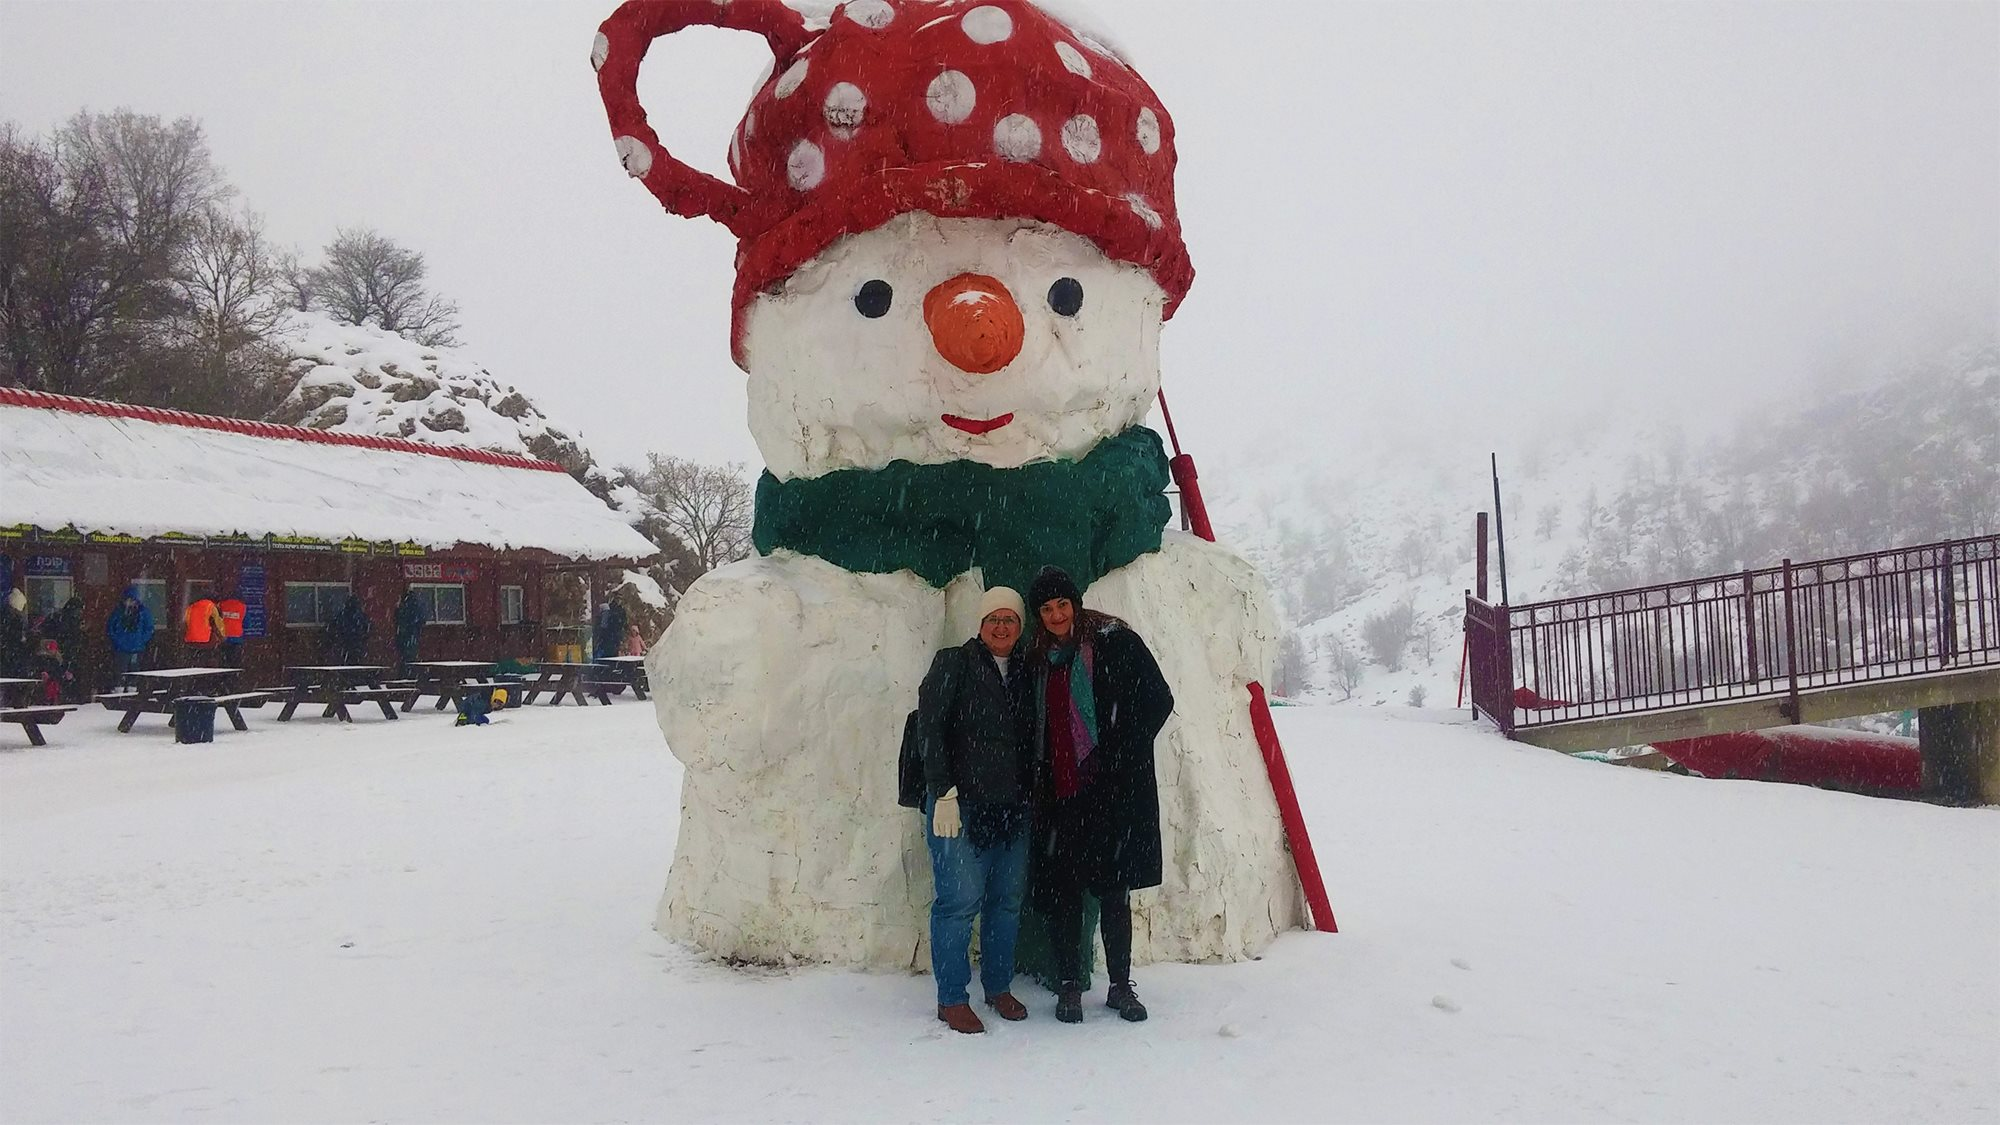 People Building A Snowman On An LDS Tour In Israel